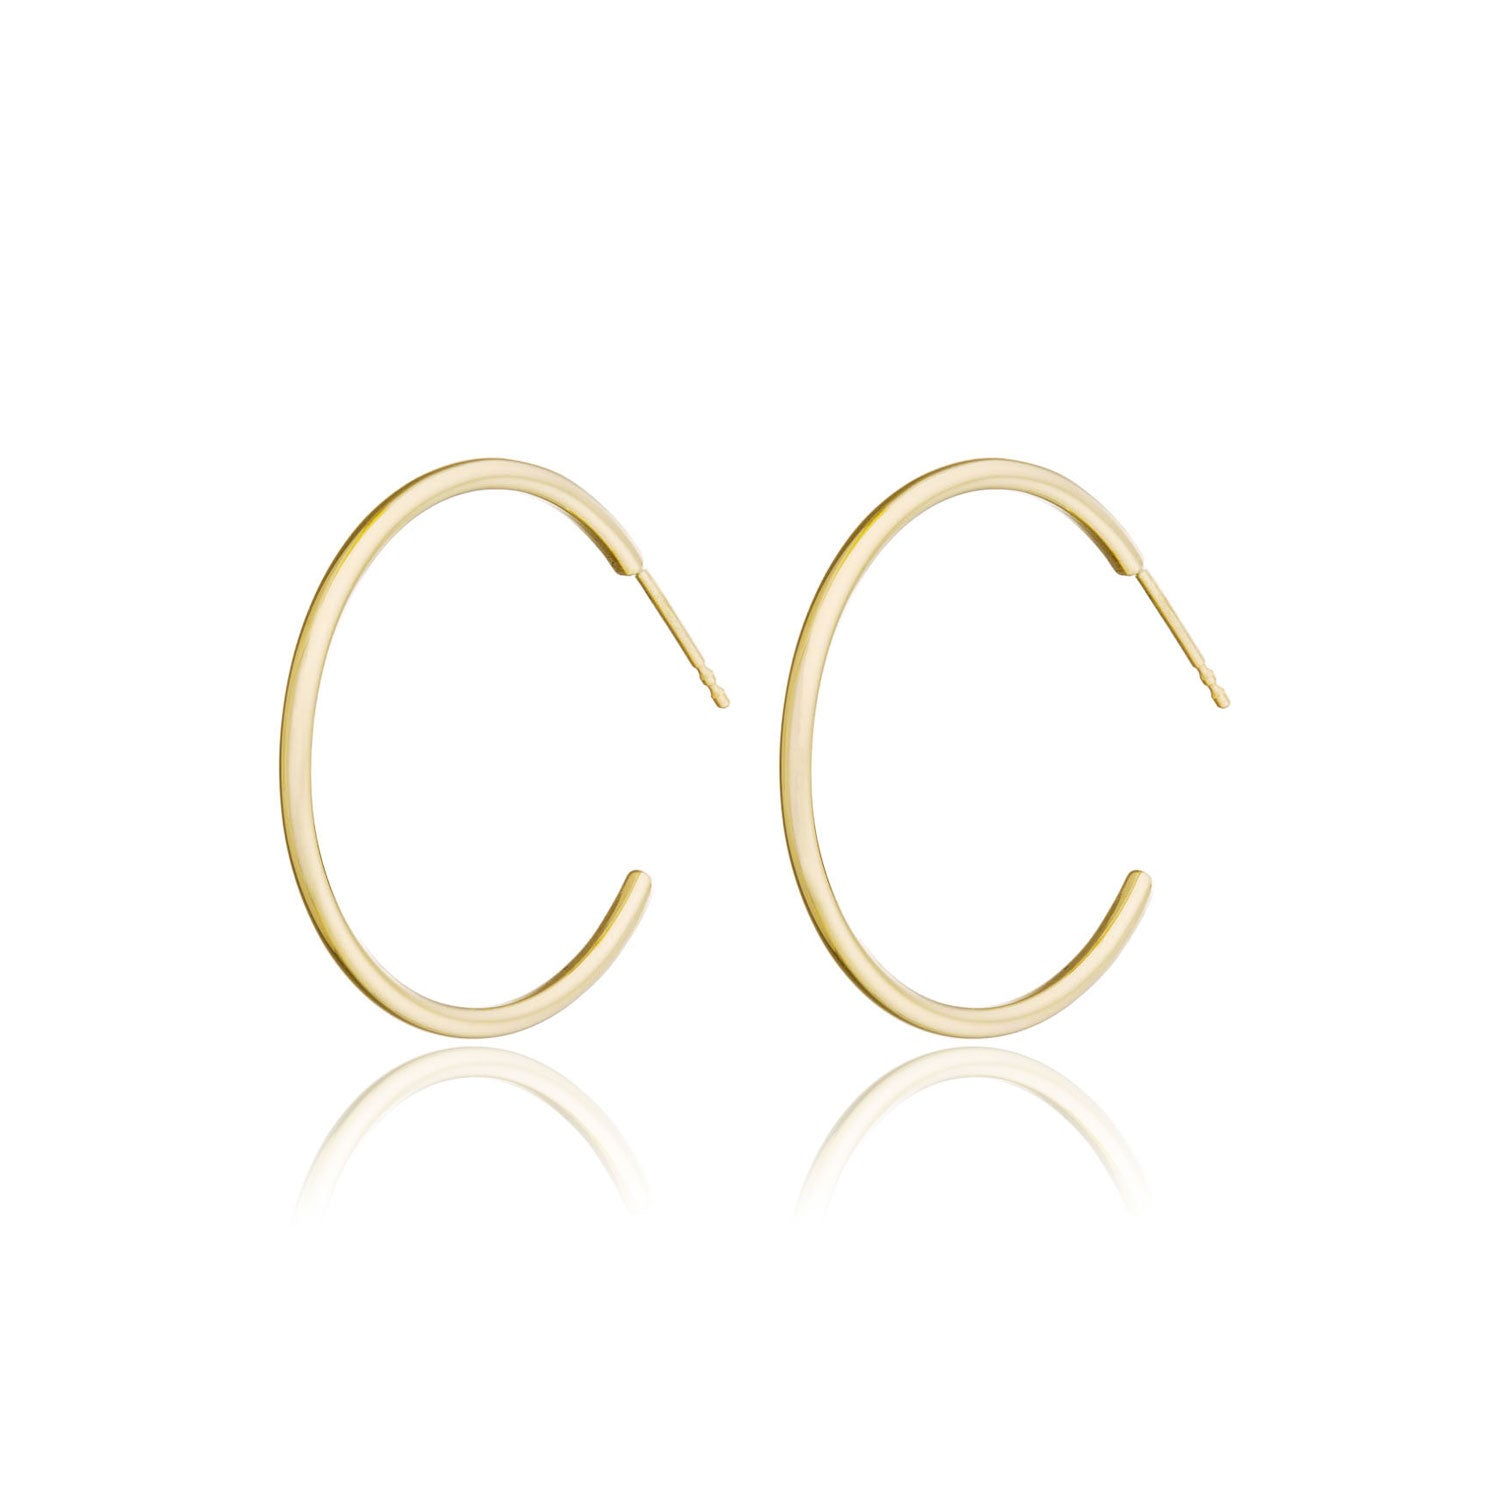 Valerie Madison 14k Yellow gold one inch hoop earrings